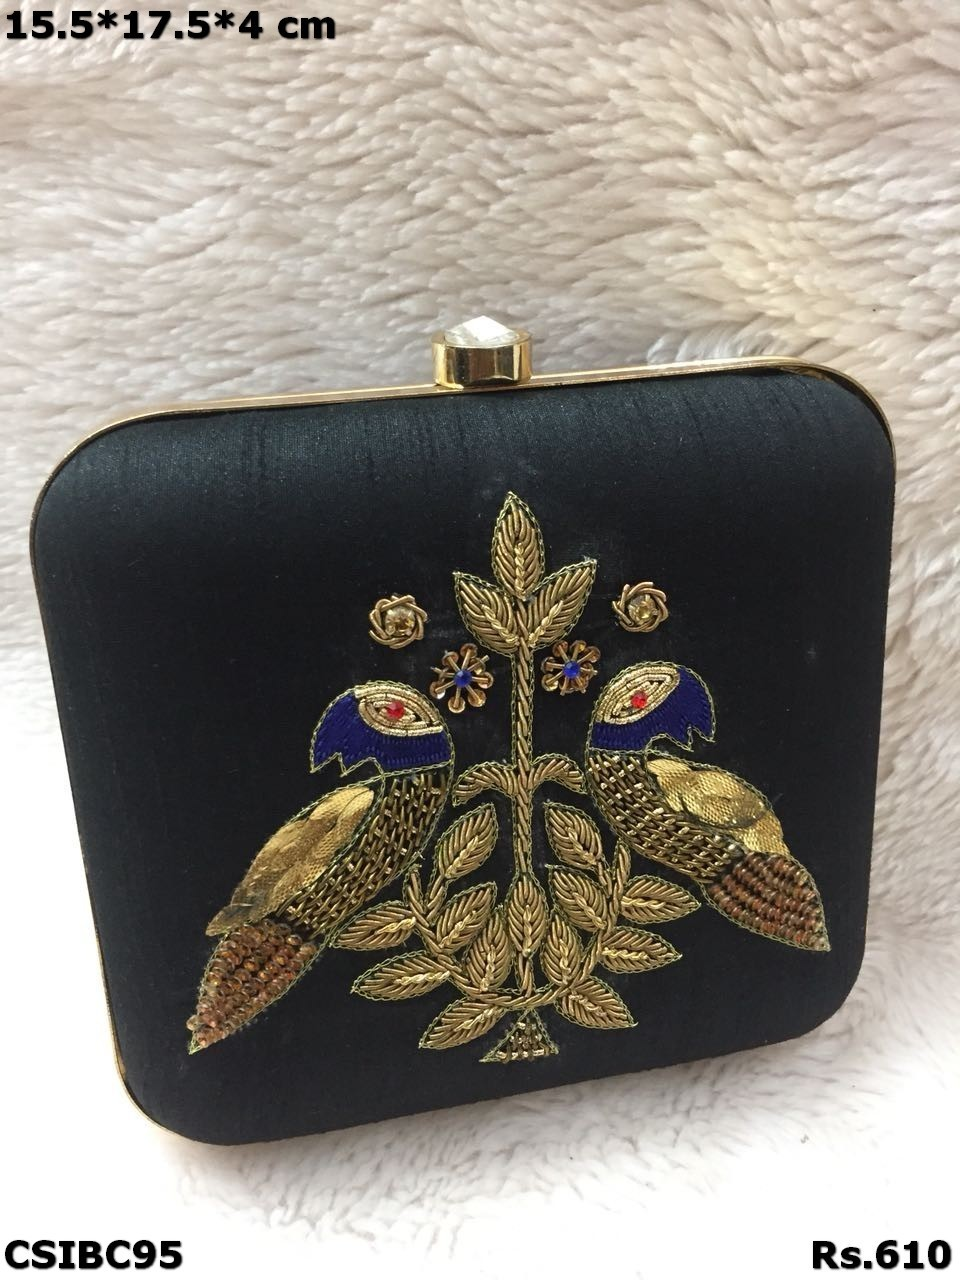 Peacock printed box clutch